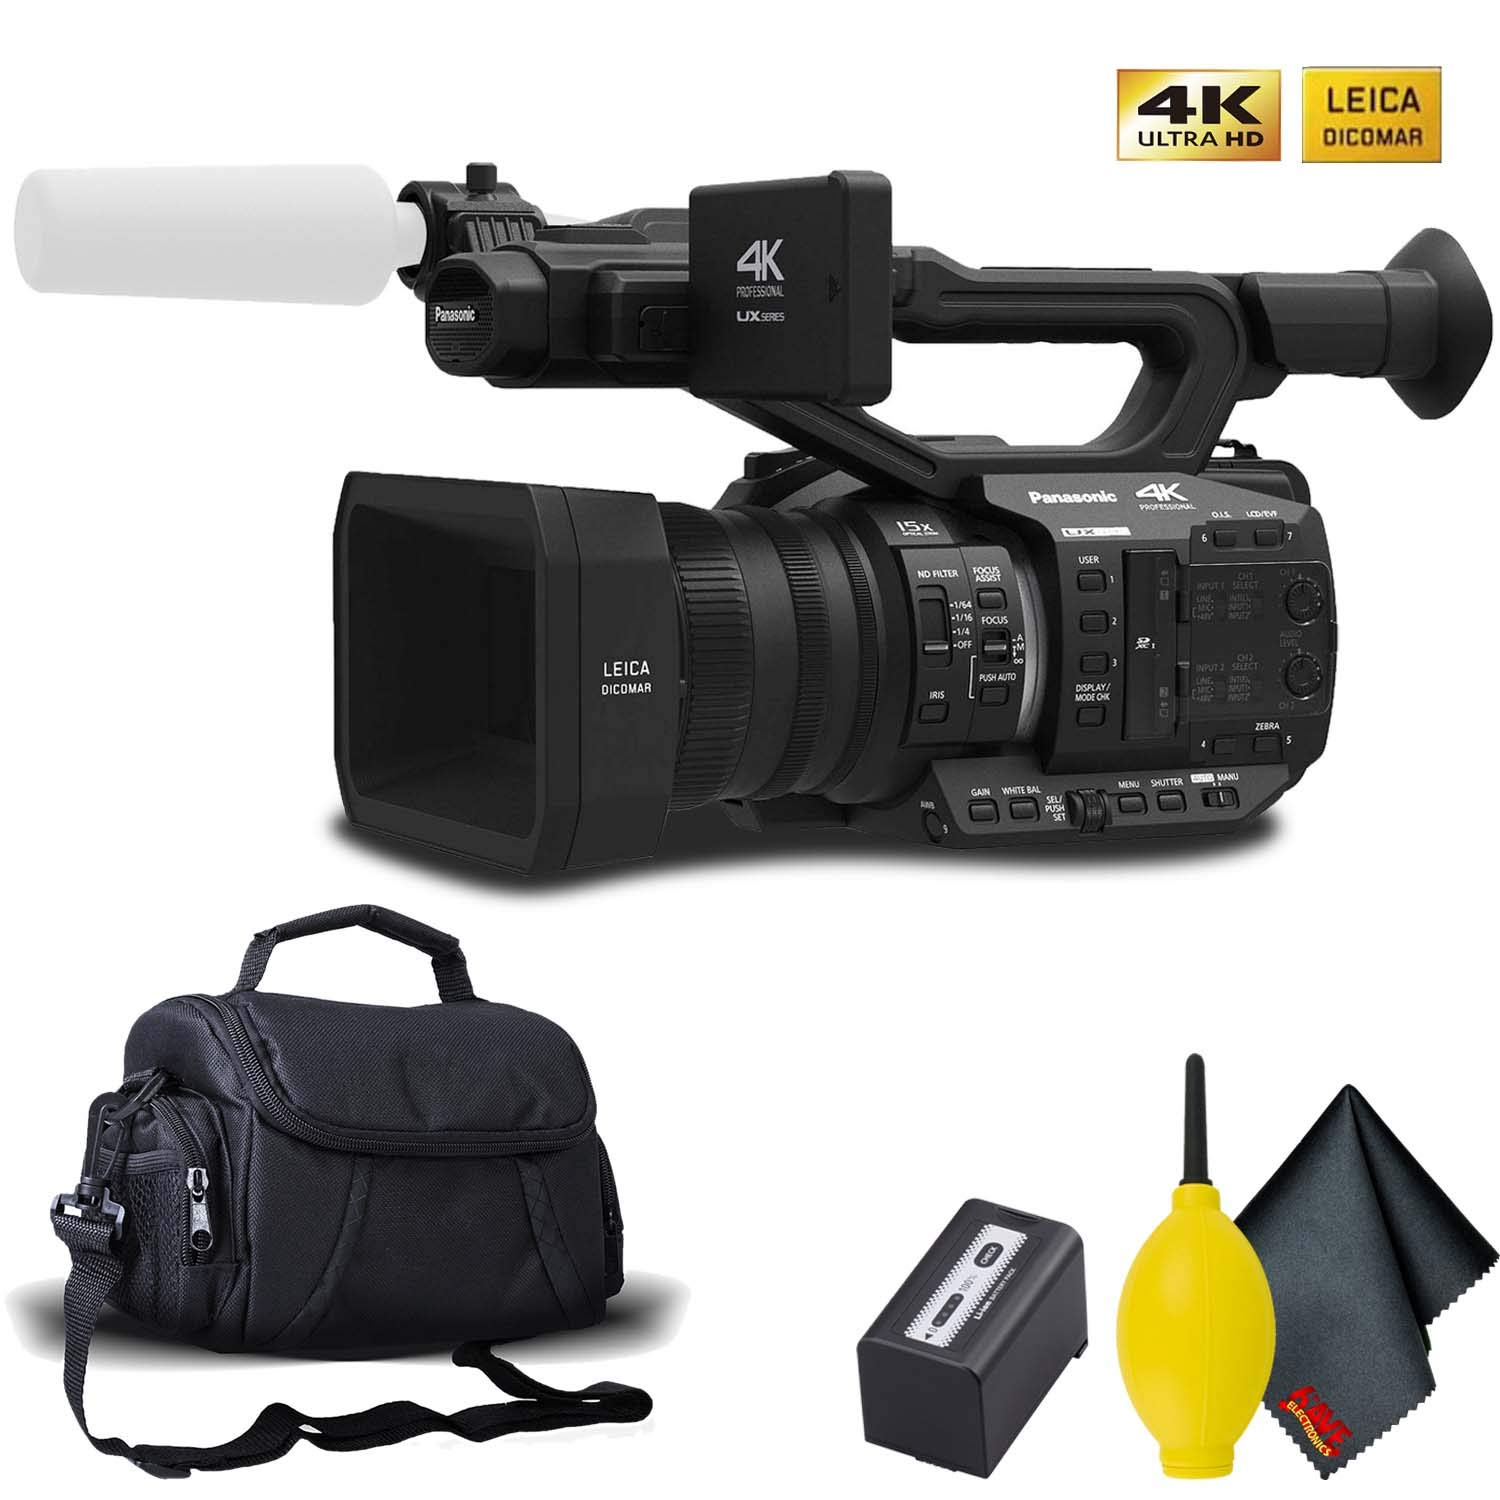 Panasonic AG-UX90 4K/HD Professional Camcorder with Carrying Case and Cleaning Kit by Panasonic